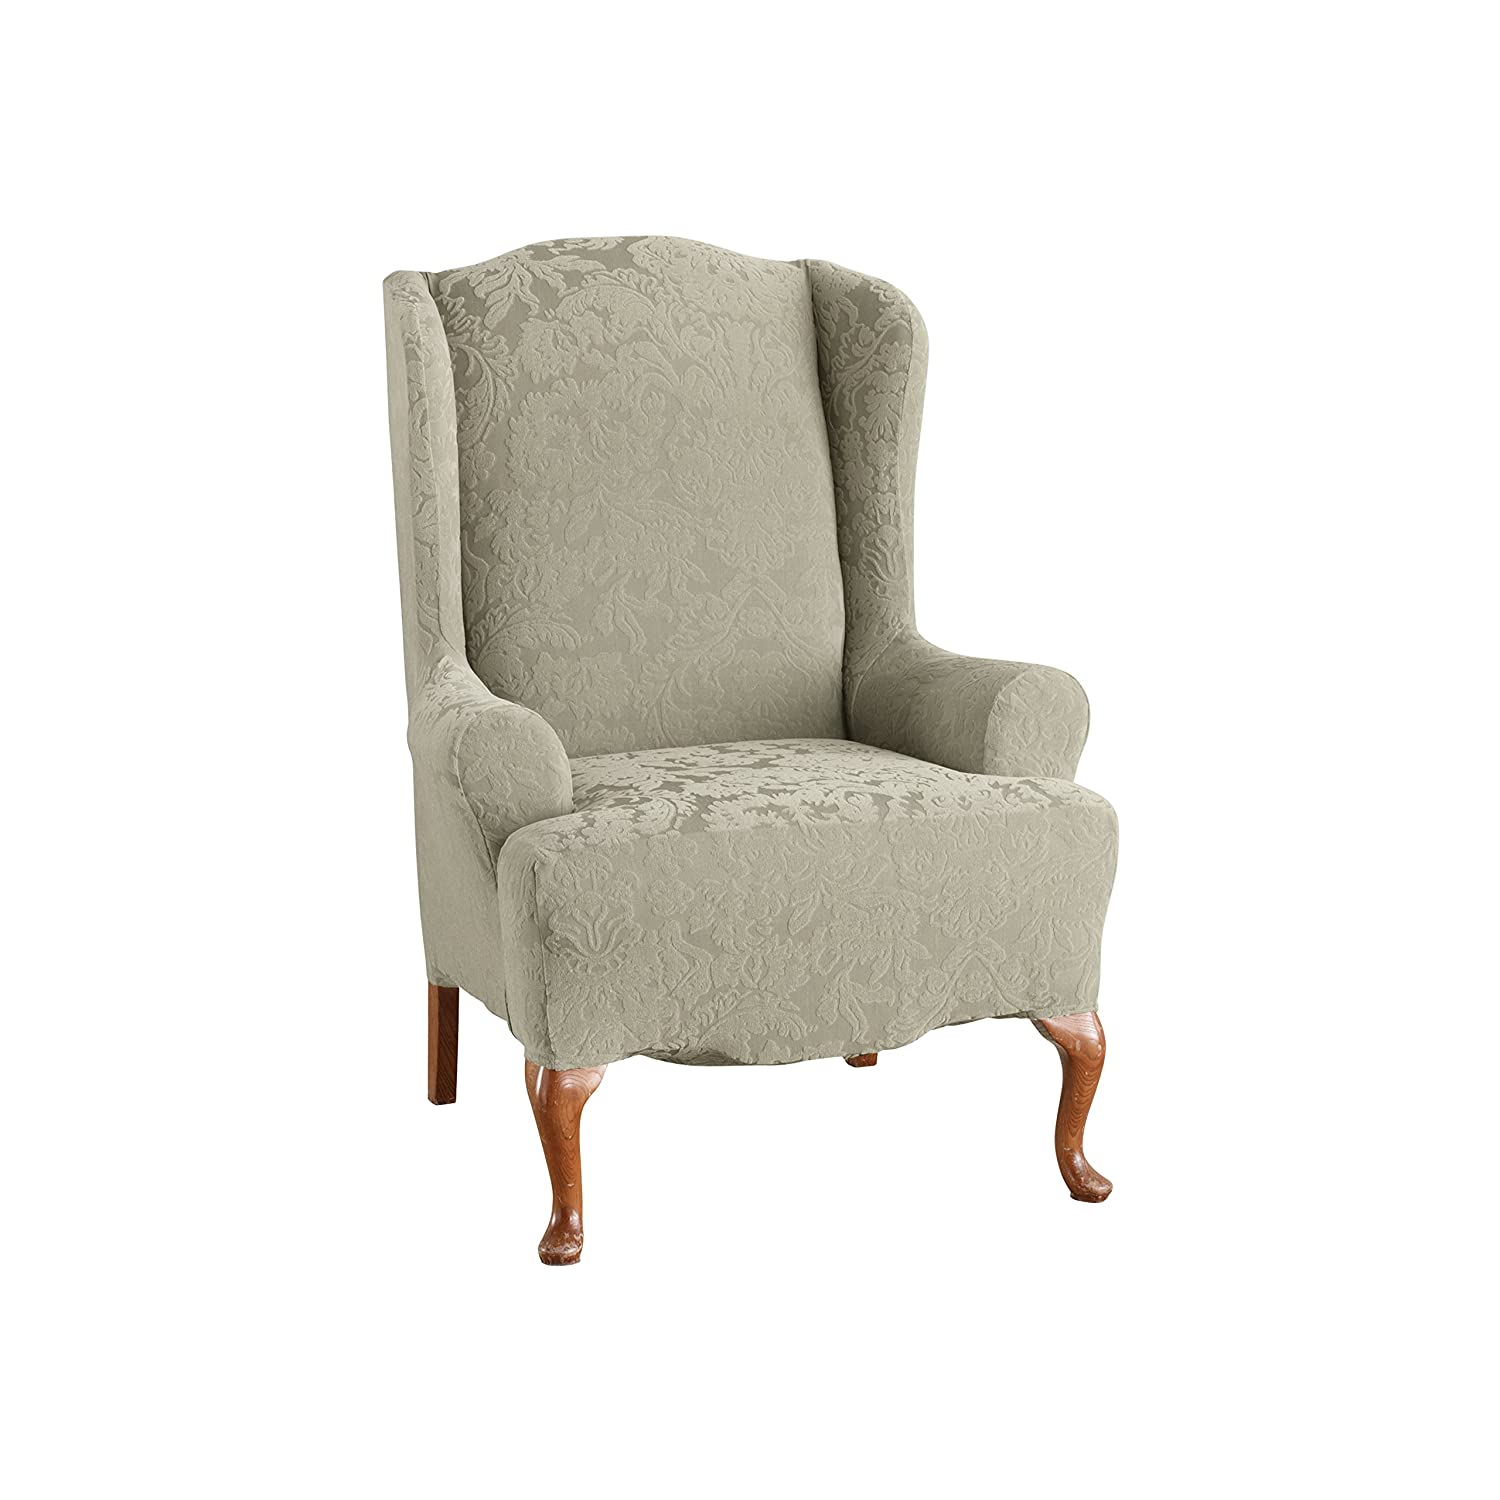 Sure Fit 39616 1 Peice Stretch Jacquard Damask Wing Chair, Sage SF39616